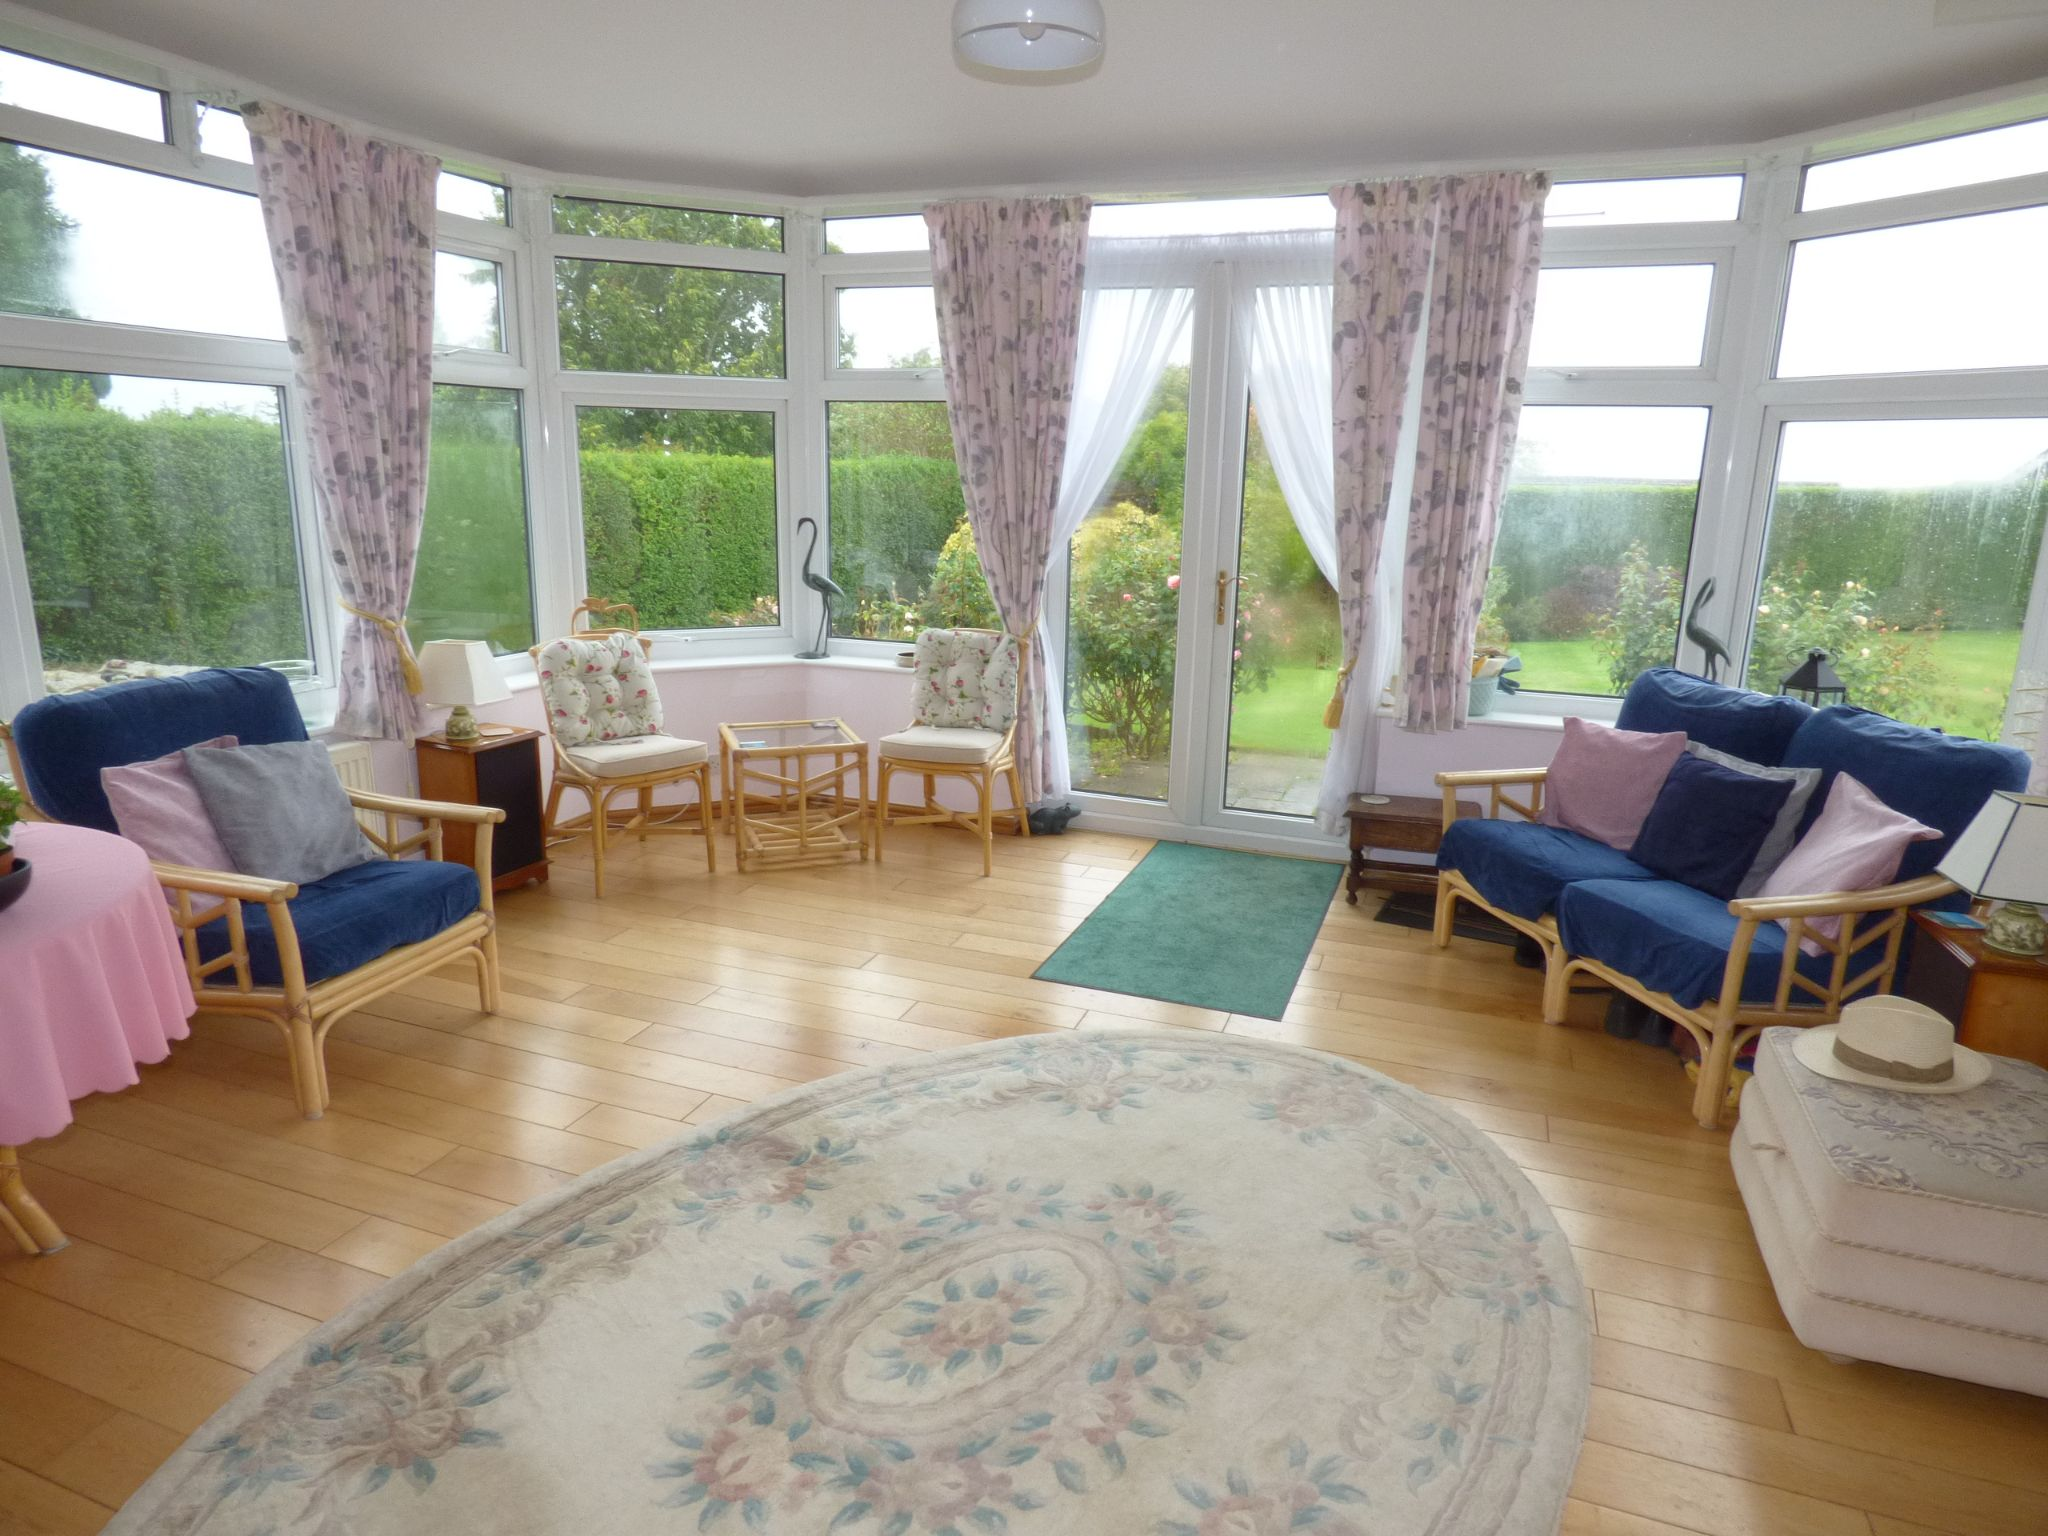 5 Bedroom Detached Bungalow For Sale - Photograph 6